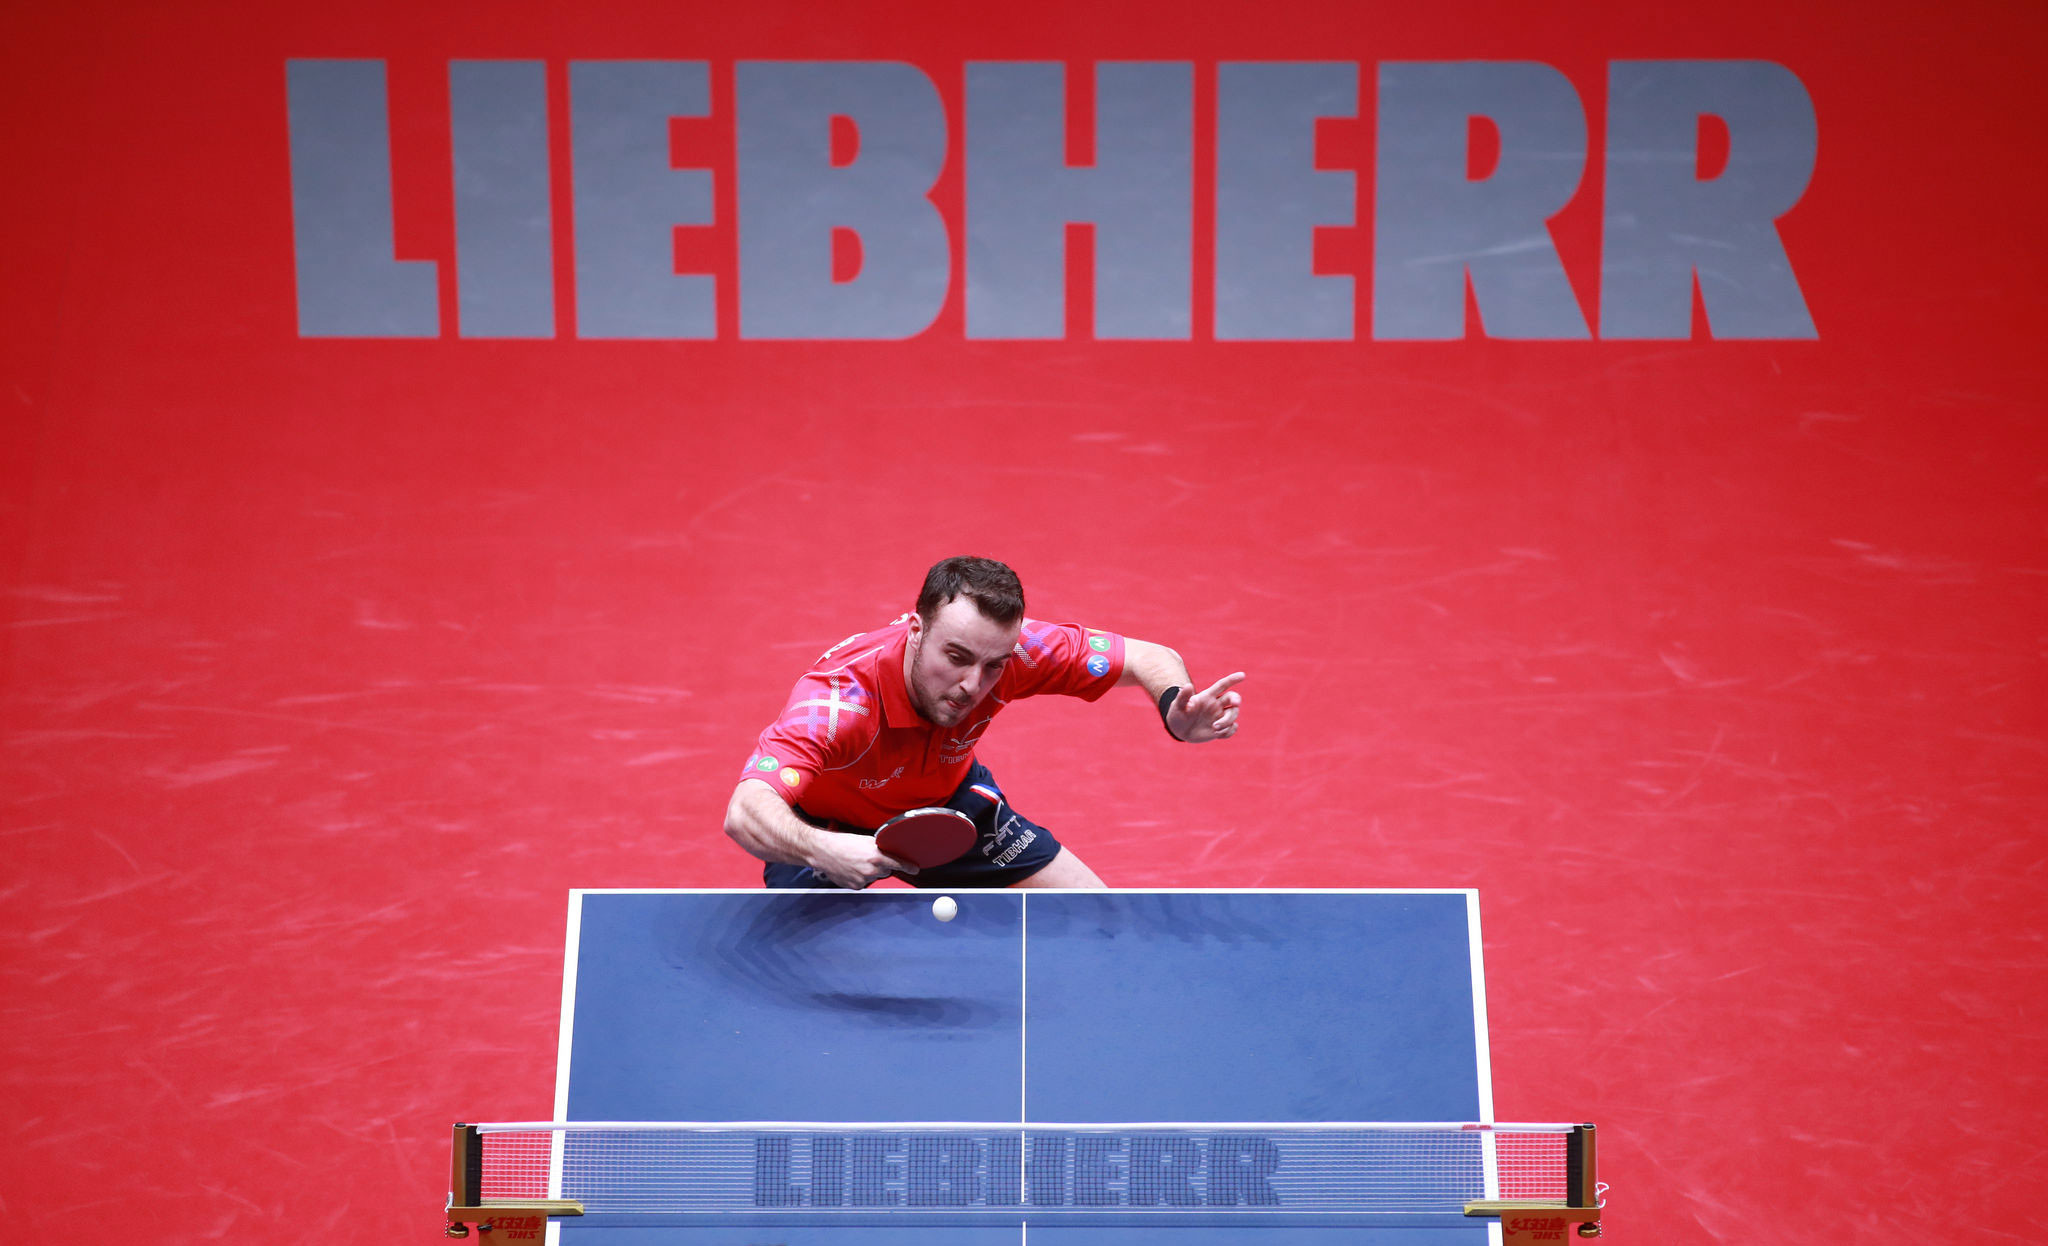 Liebherr to sponsor 2019 and 2020 ITTF World and European Championships